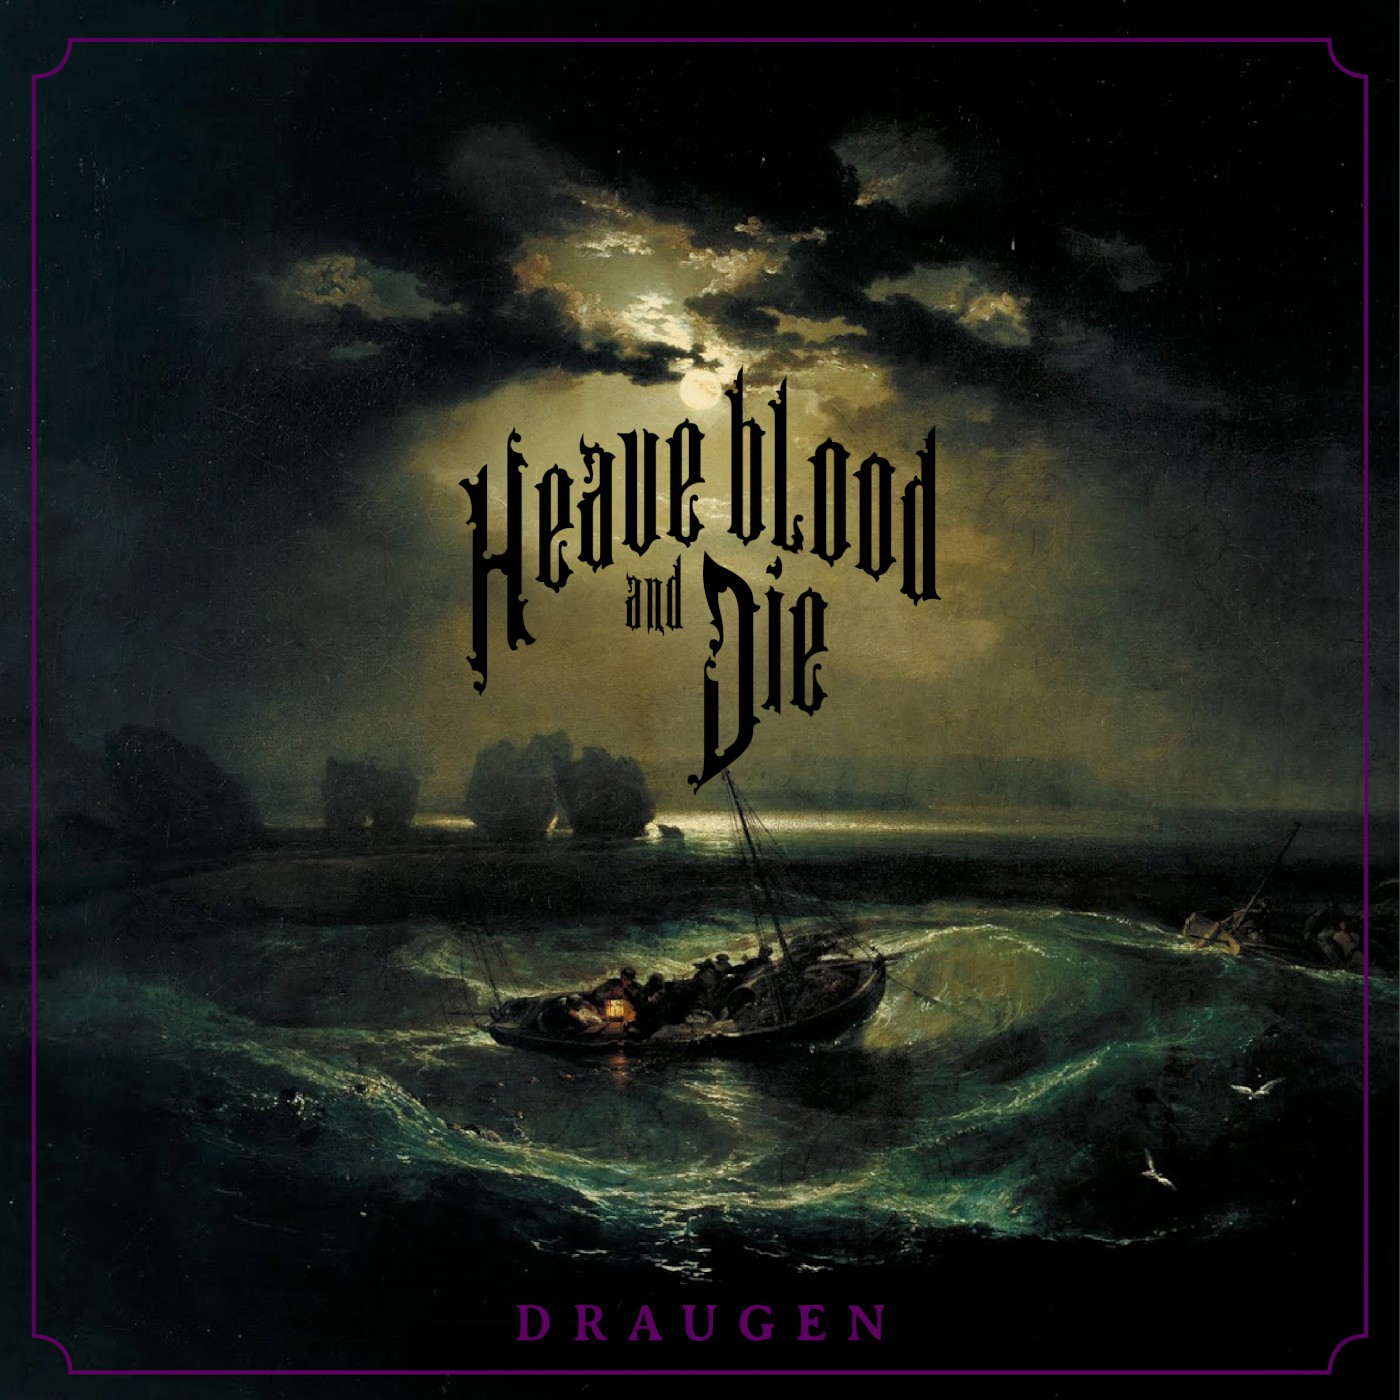 heave blood and die draugen